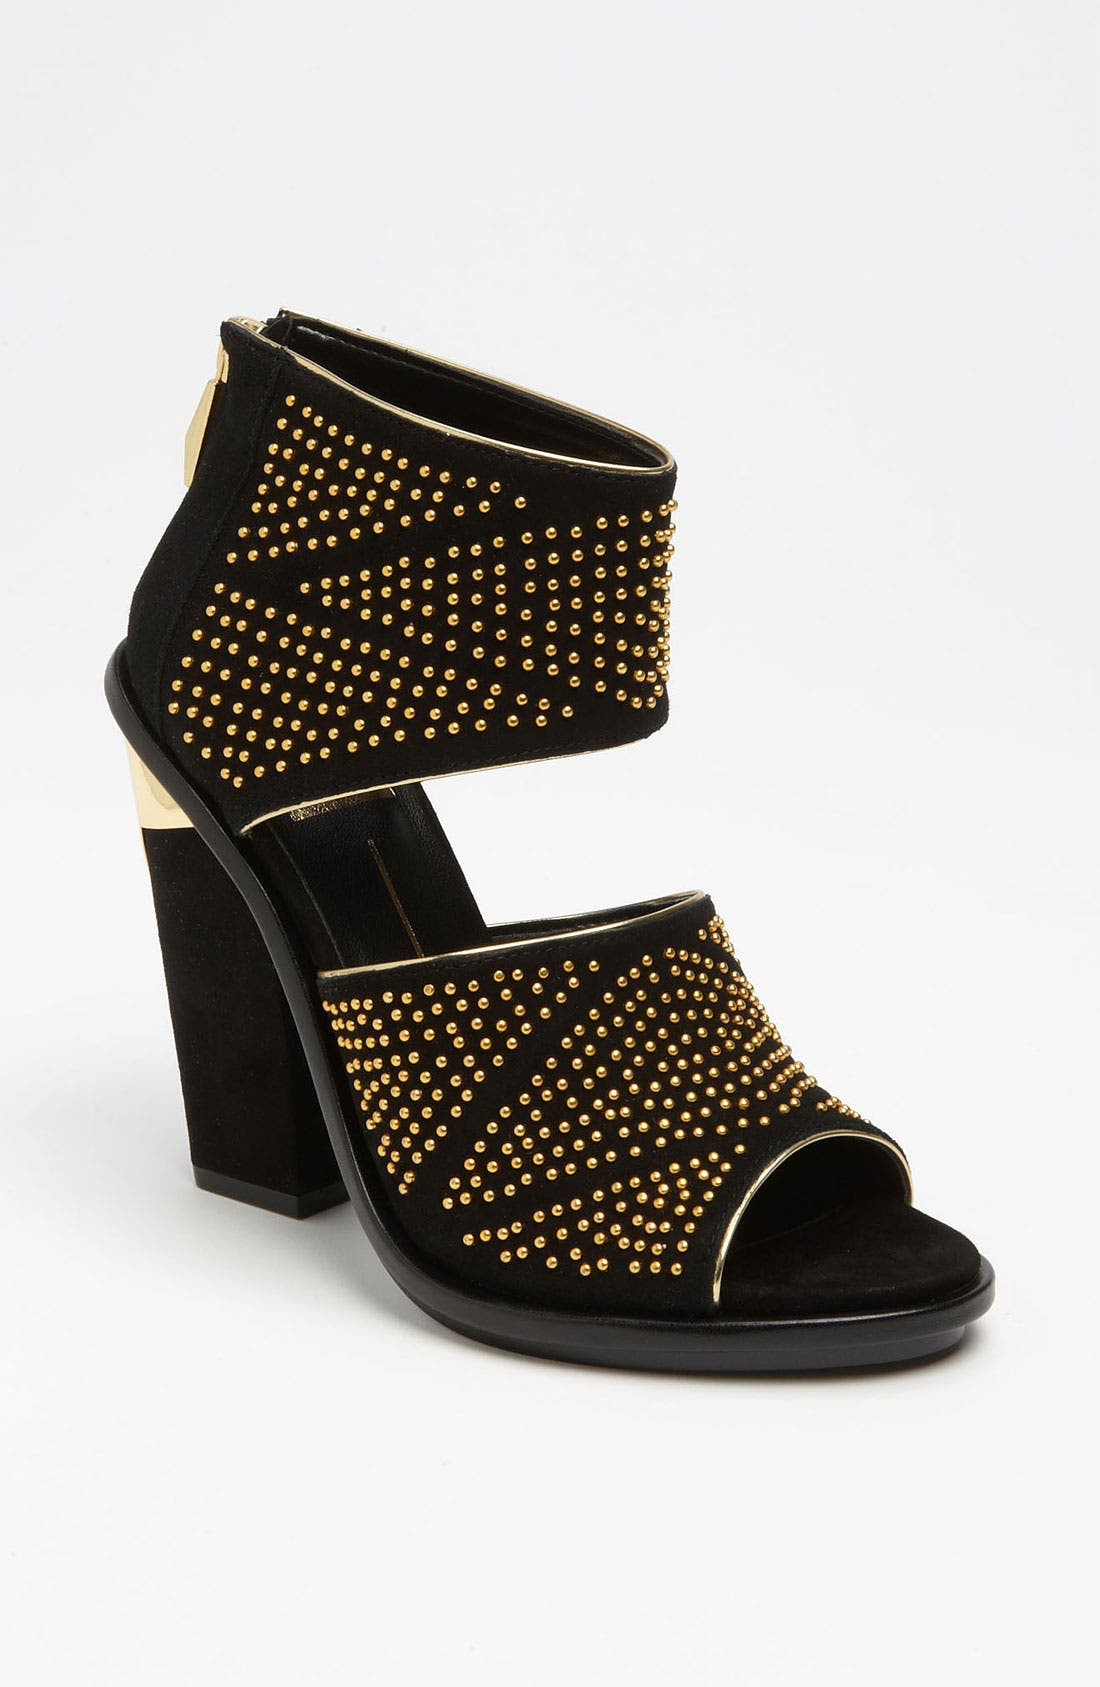 Alternate Image 1 Selected - DV by Dolce Vita 'Nita' Open Toe Bootie